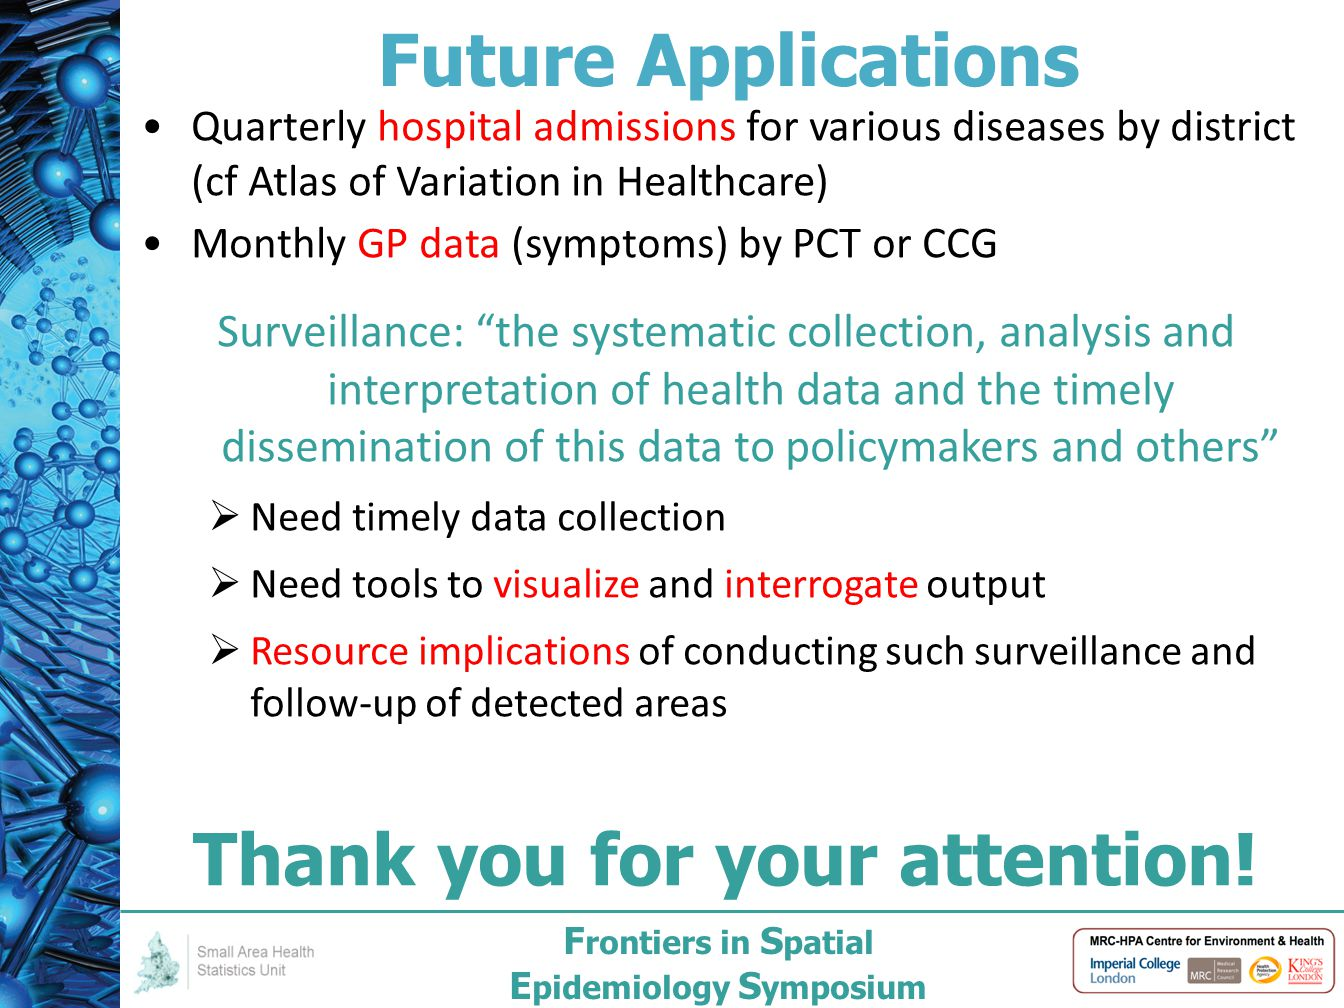 F rontiers in S patial E pidemiology S ymposium Future Applications Quarterly hospital admissions for various diseases by district (cf Atlas of Variation in Healthcare) Monthly GP data (symptoms) by PCT or CCG Surveillance: the systematic collection, analysis and interpretation of health data and the timely dissemination of this data to policymakers and others  Need timely data collection  Need tools to visualize and interrogate output  Resource implications of conducting such surveillance and follow-up of detected areas Thank you for your attention!